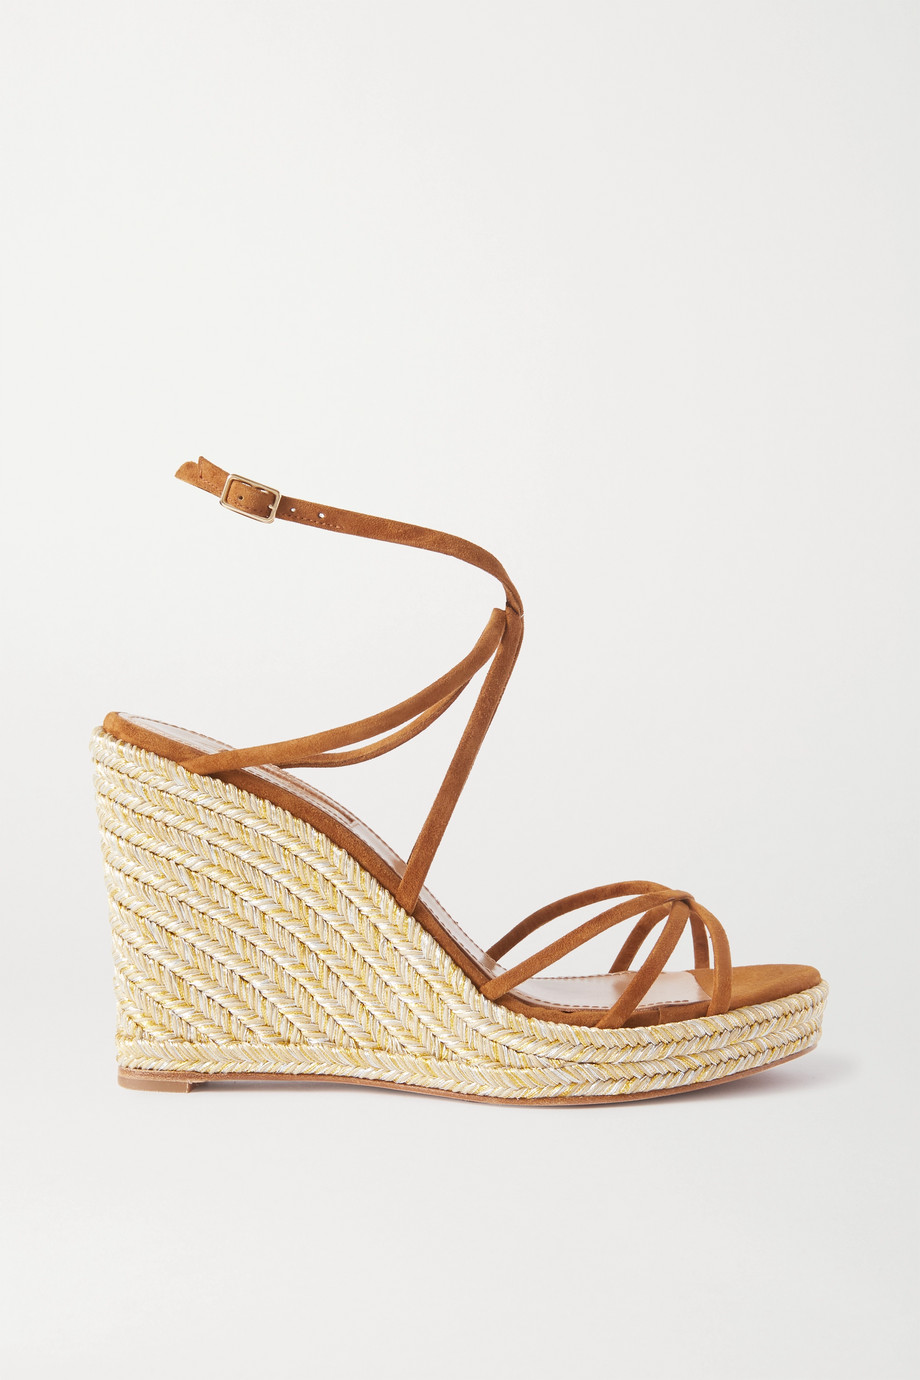 Aquazzura Gin 85 suede espadrille wedge sandals